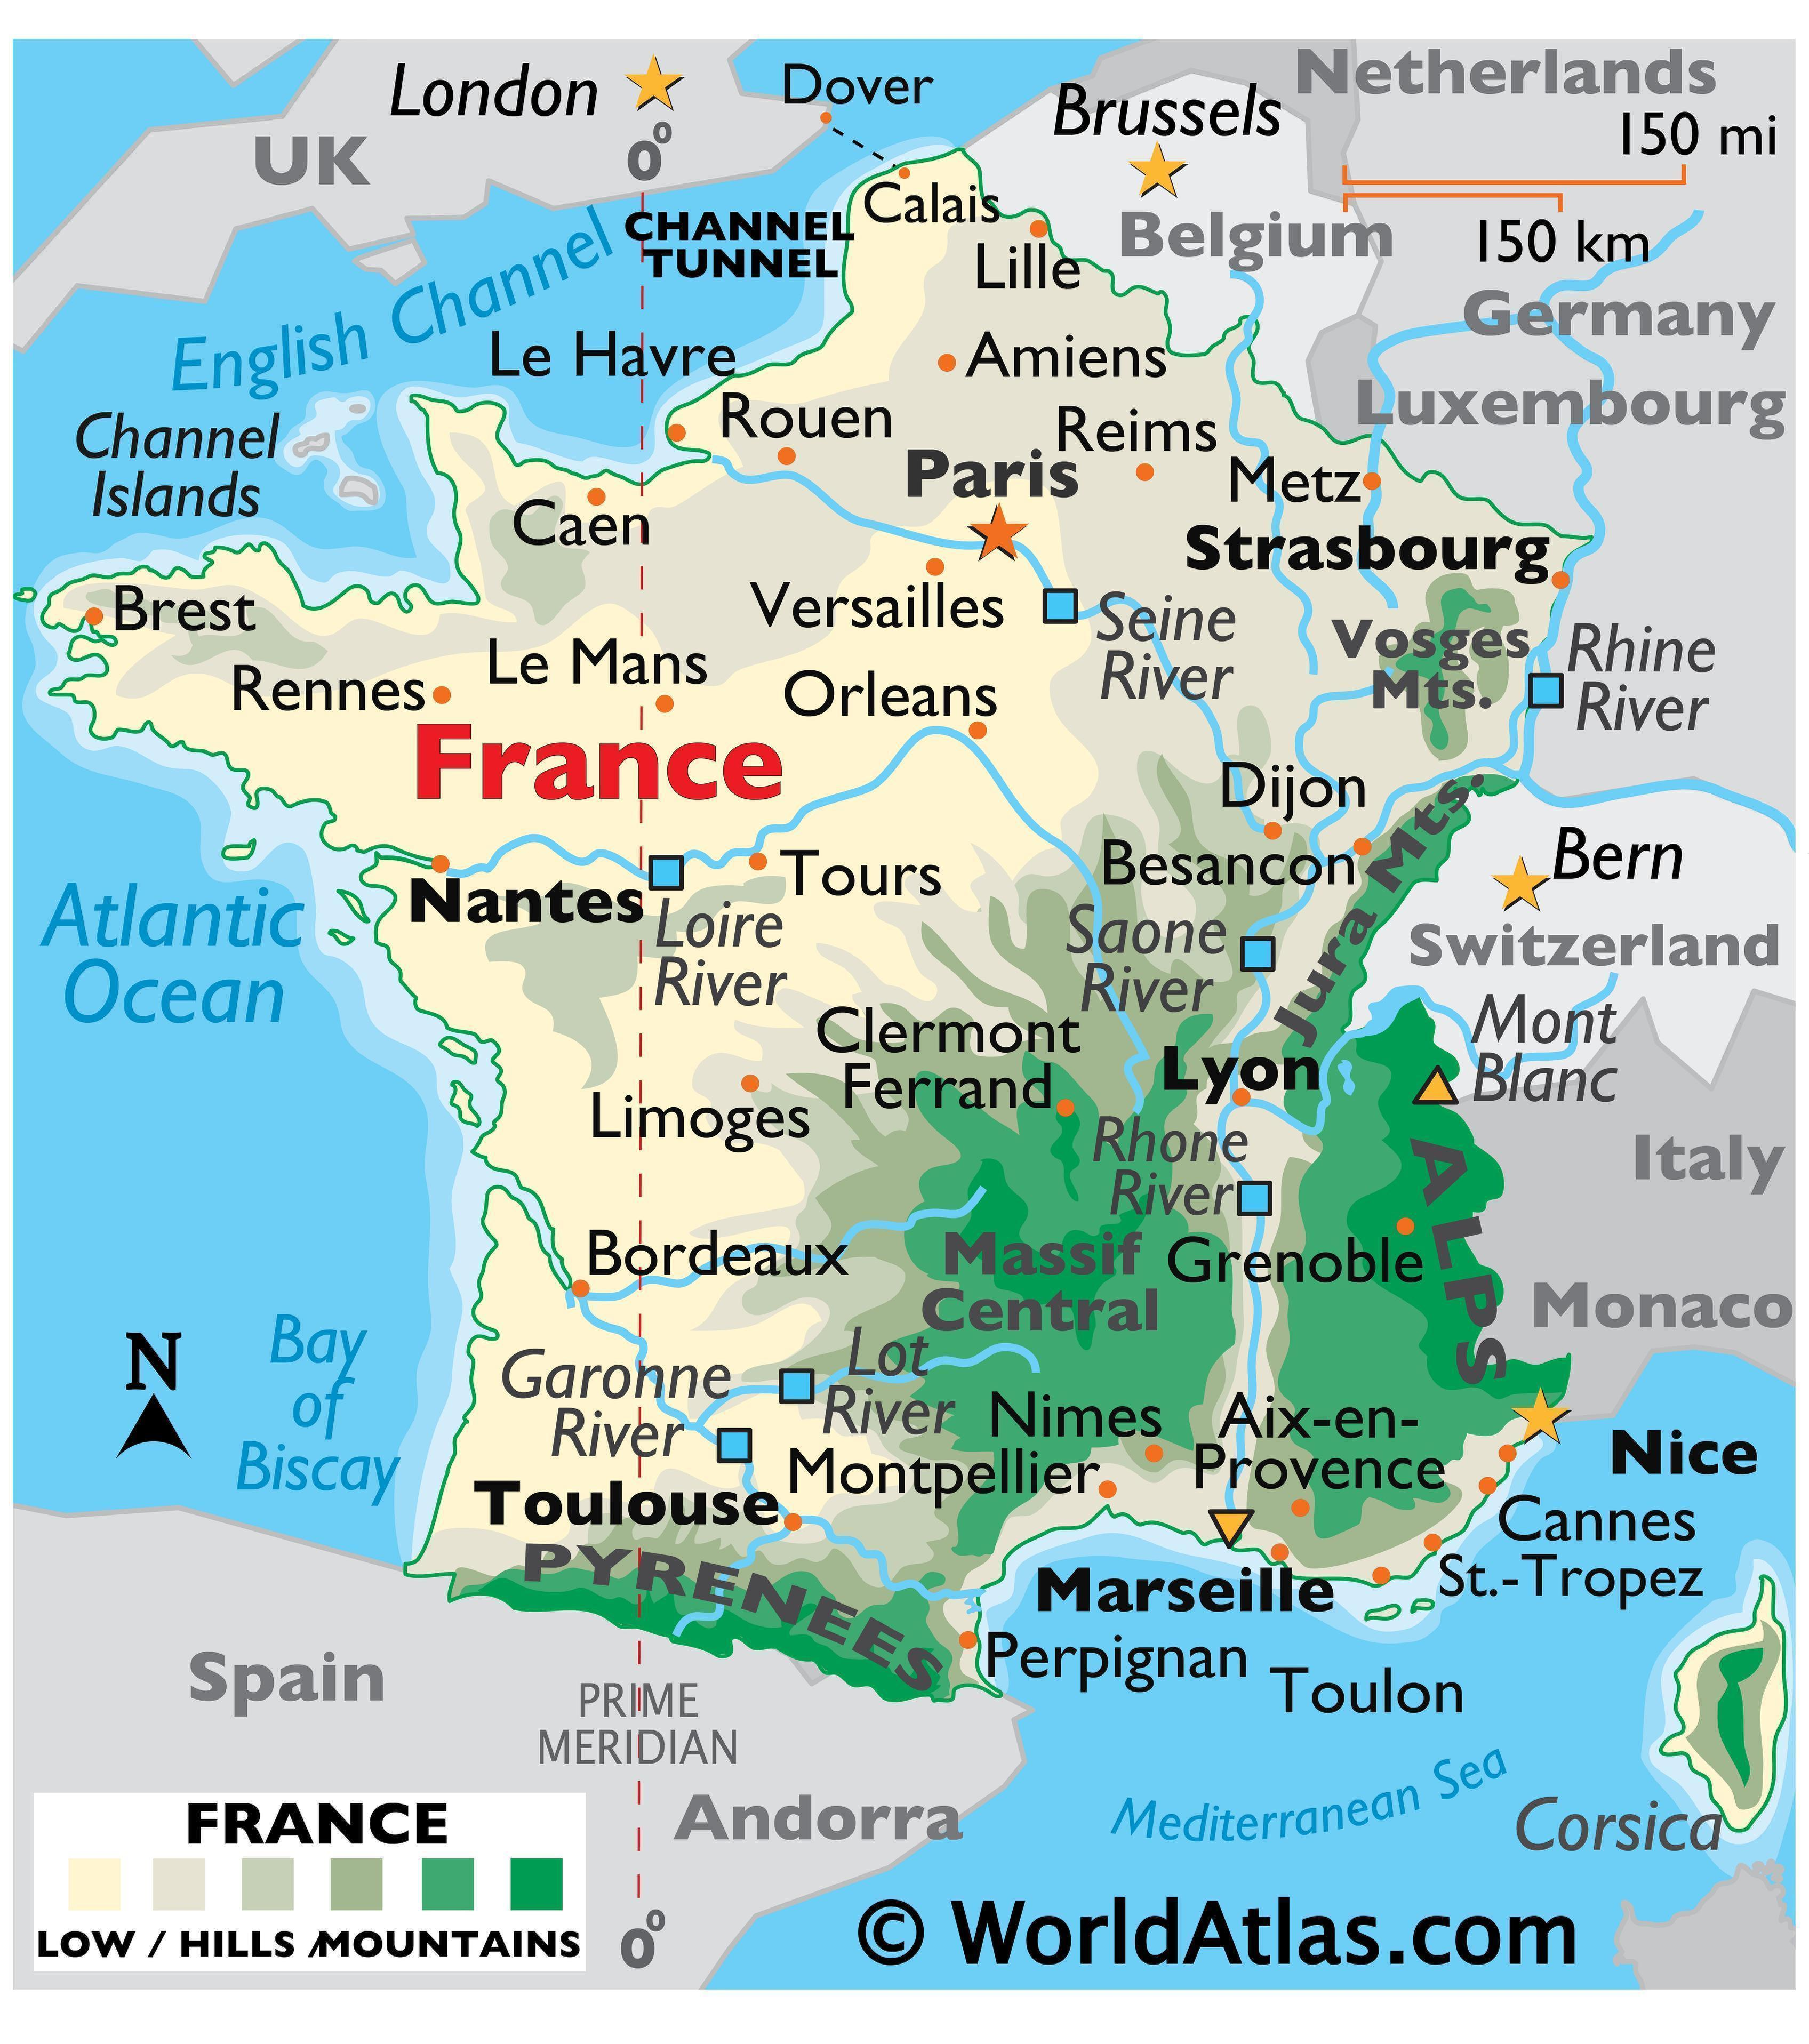 Physical Map of the France showing terrain, mountain ranges, Mont Blanc, major rivers, important cities, international boundaries, etc.